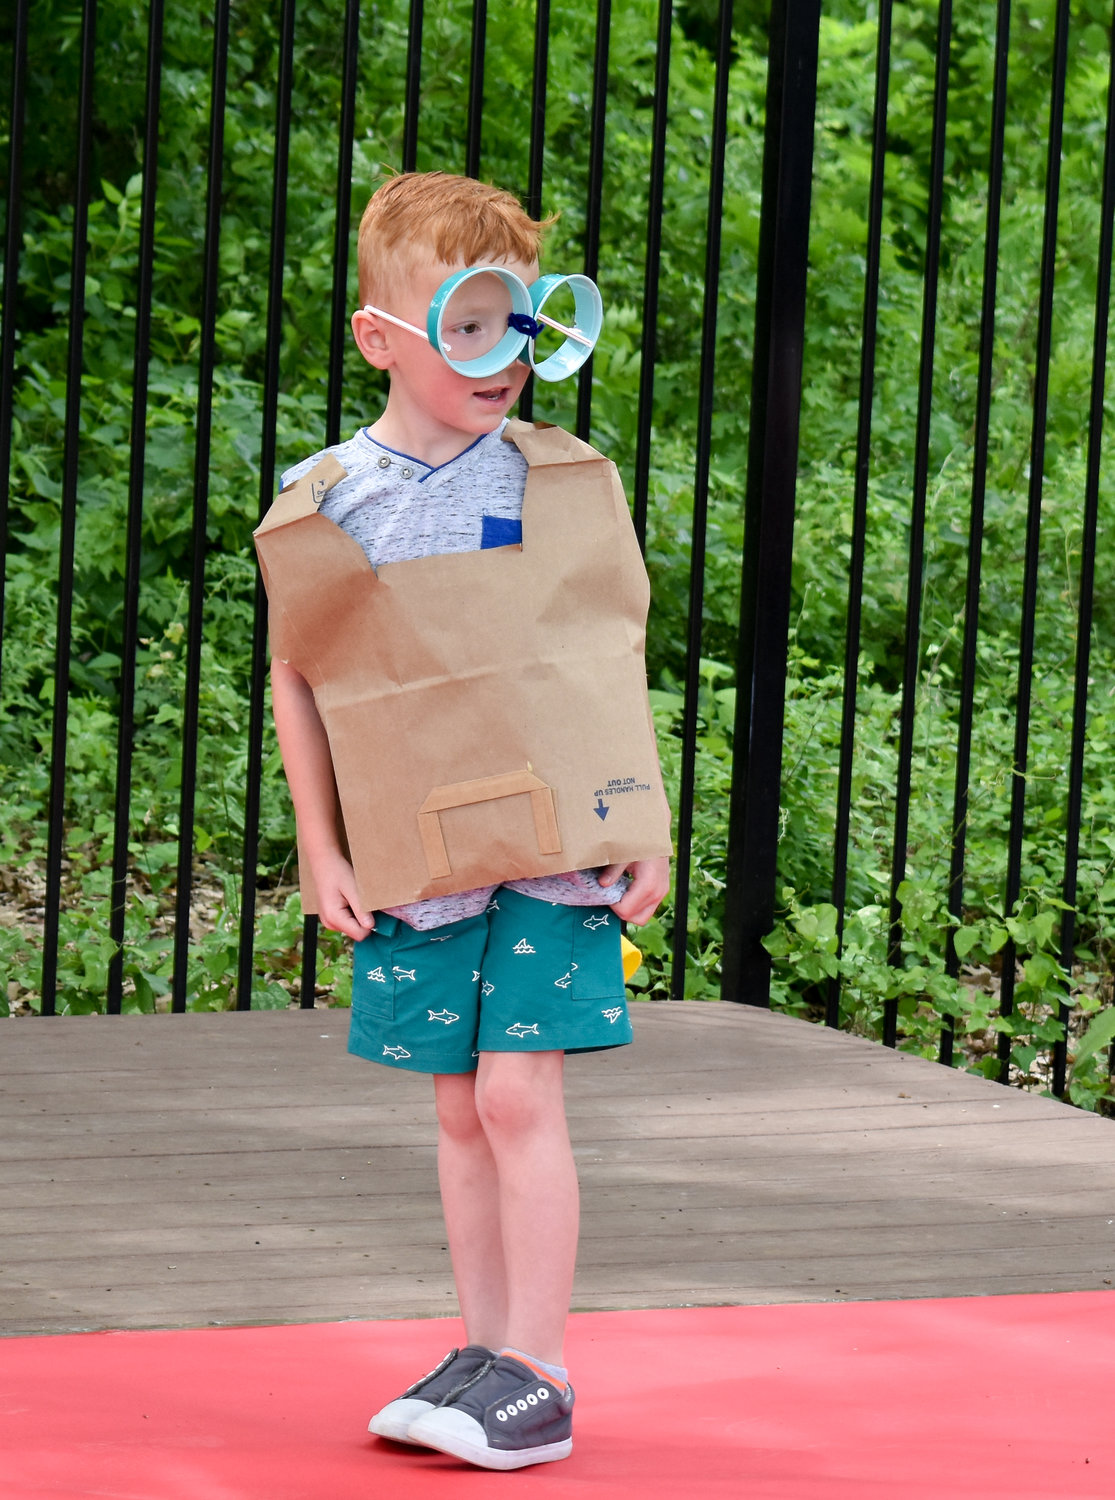 Miles Gouldie, age 5, poses on the runway during the 9th Annual Root for Earth campaign at The Goddard School in Cedar Park on Monday, April 22, 2019.